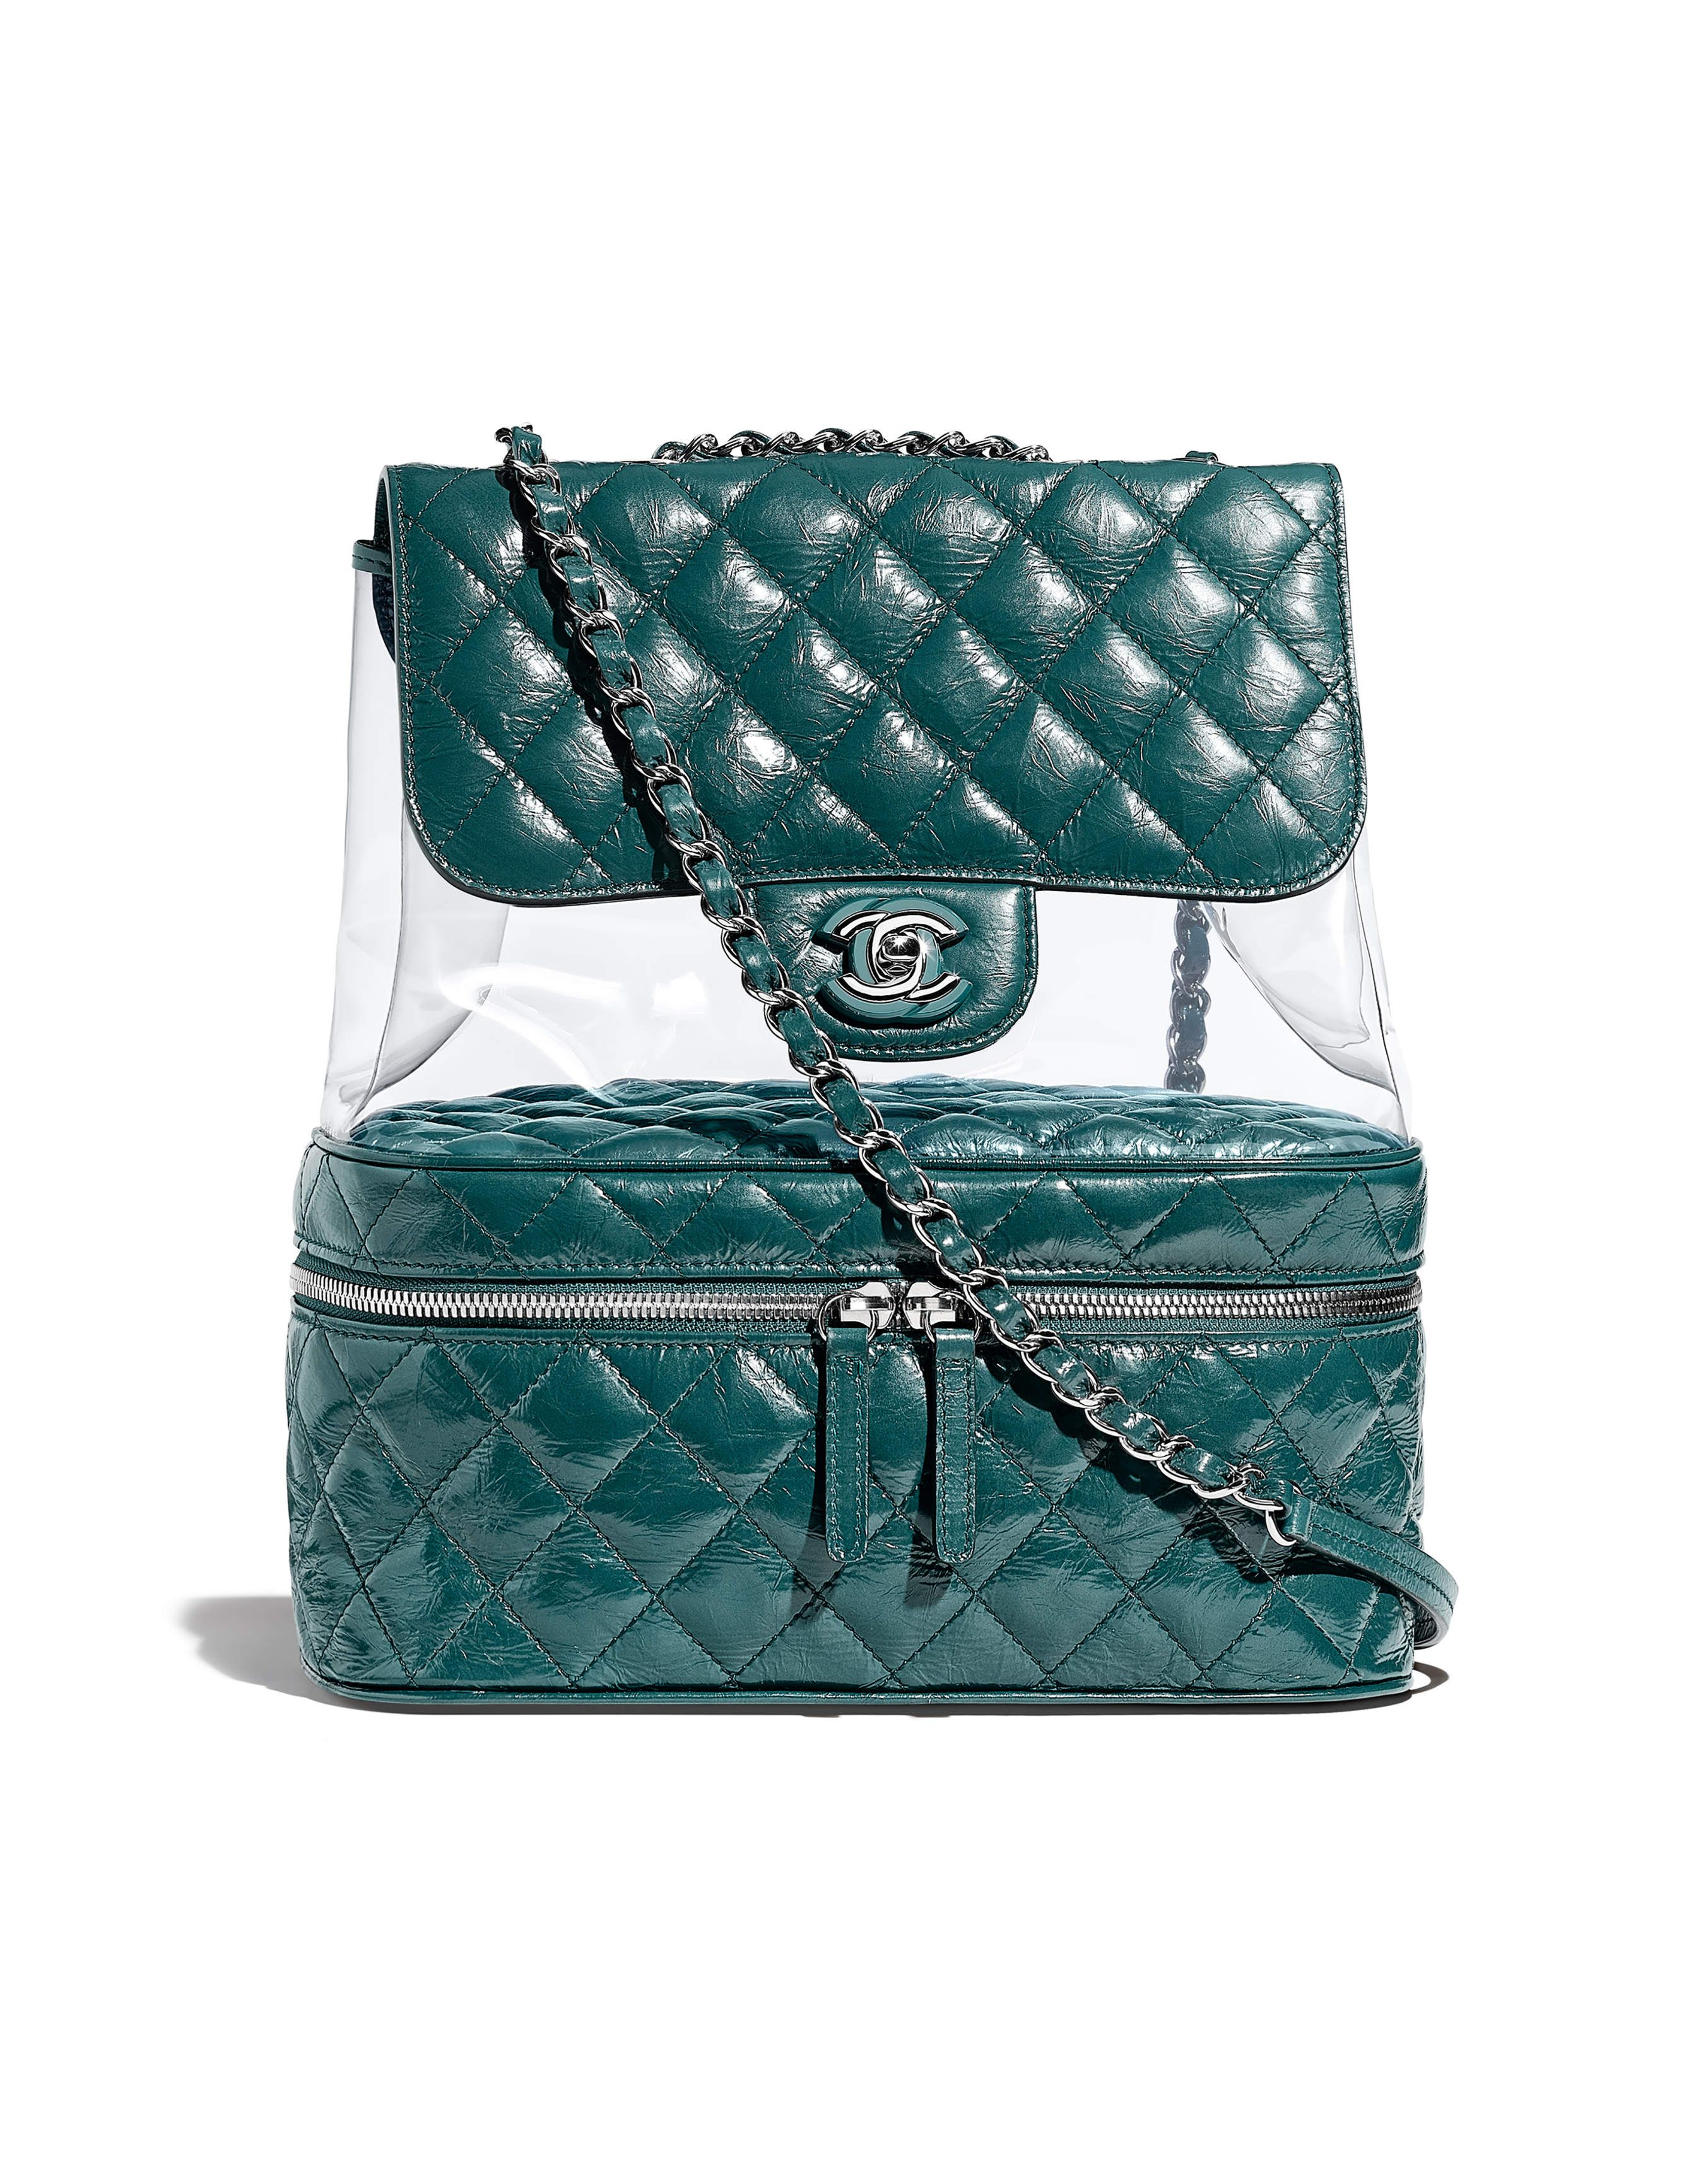 The Spring Summer 2018 Handbags Collection On Chanel Official Website